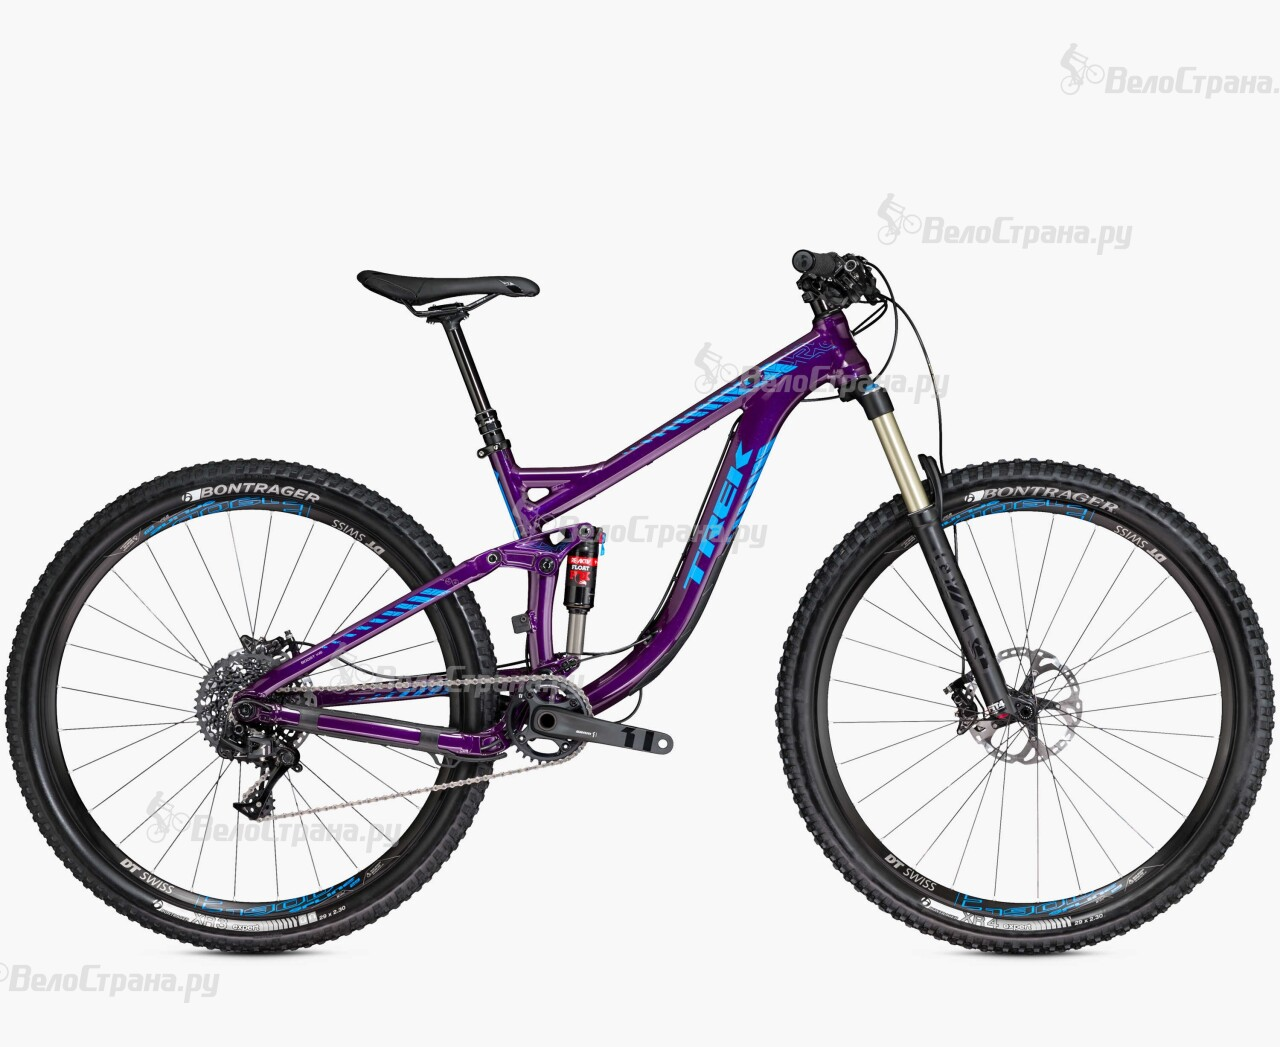 Велосипед Trek Remedy 9 29 (2016) велосипед trek remedy 7 27 5 2016